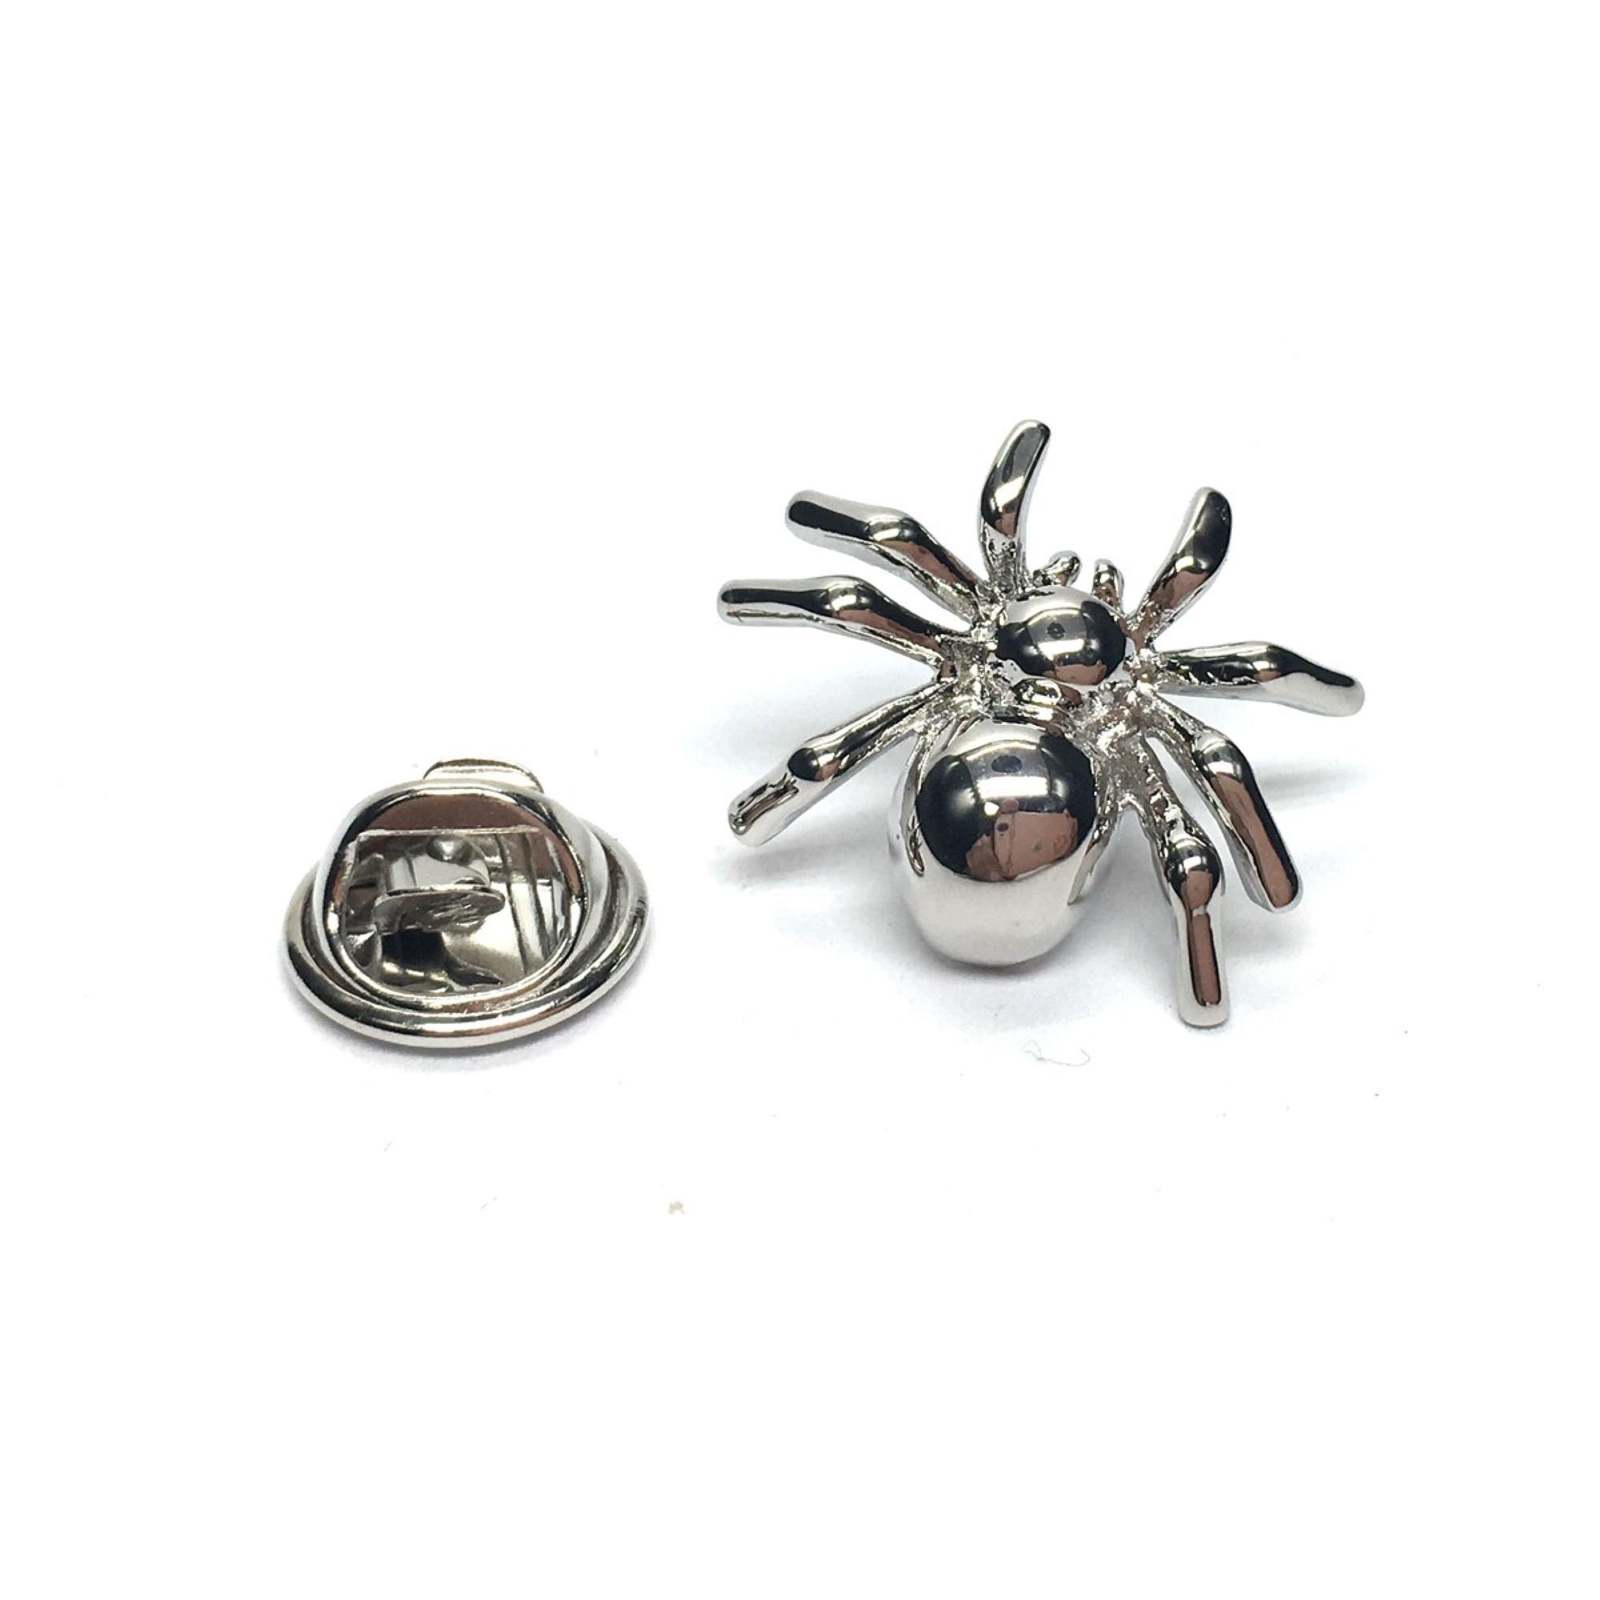 spider, silver, arachnid , lapel pin/ tie tac etc, comes in gift box